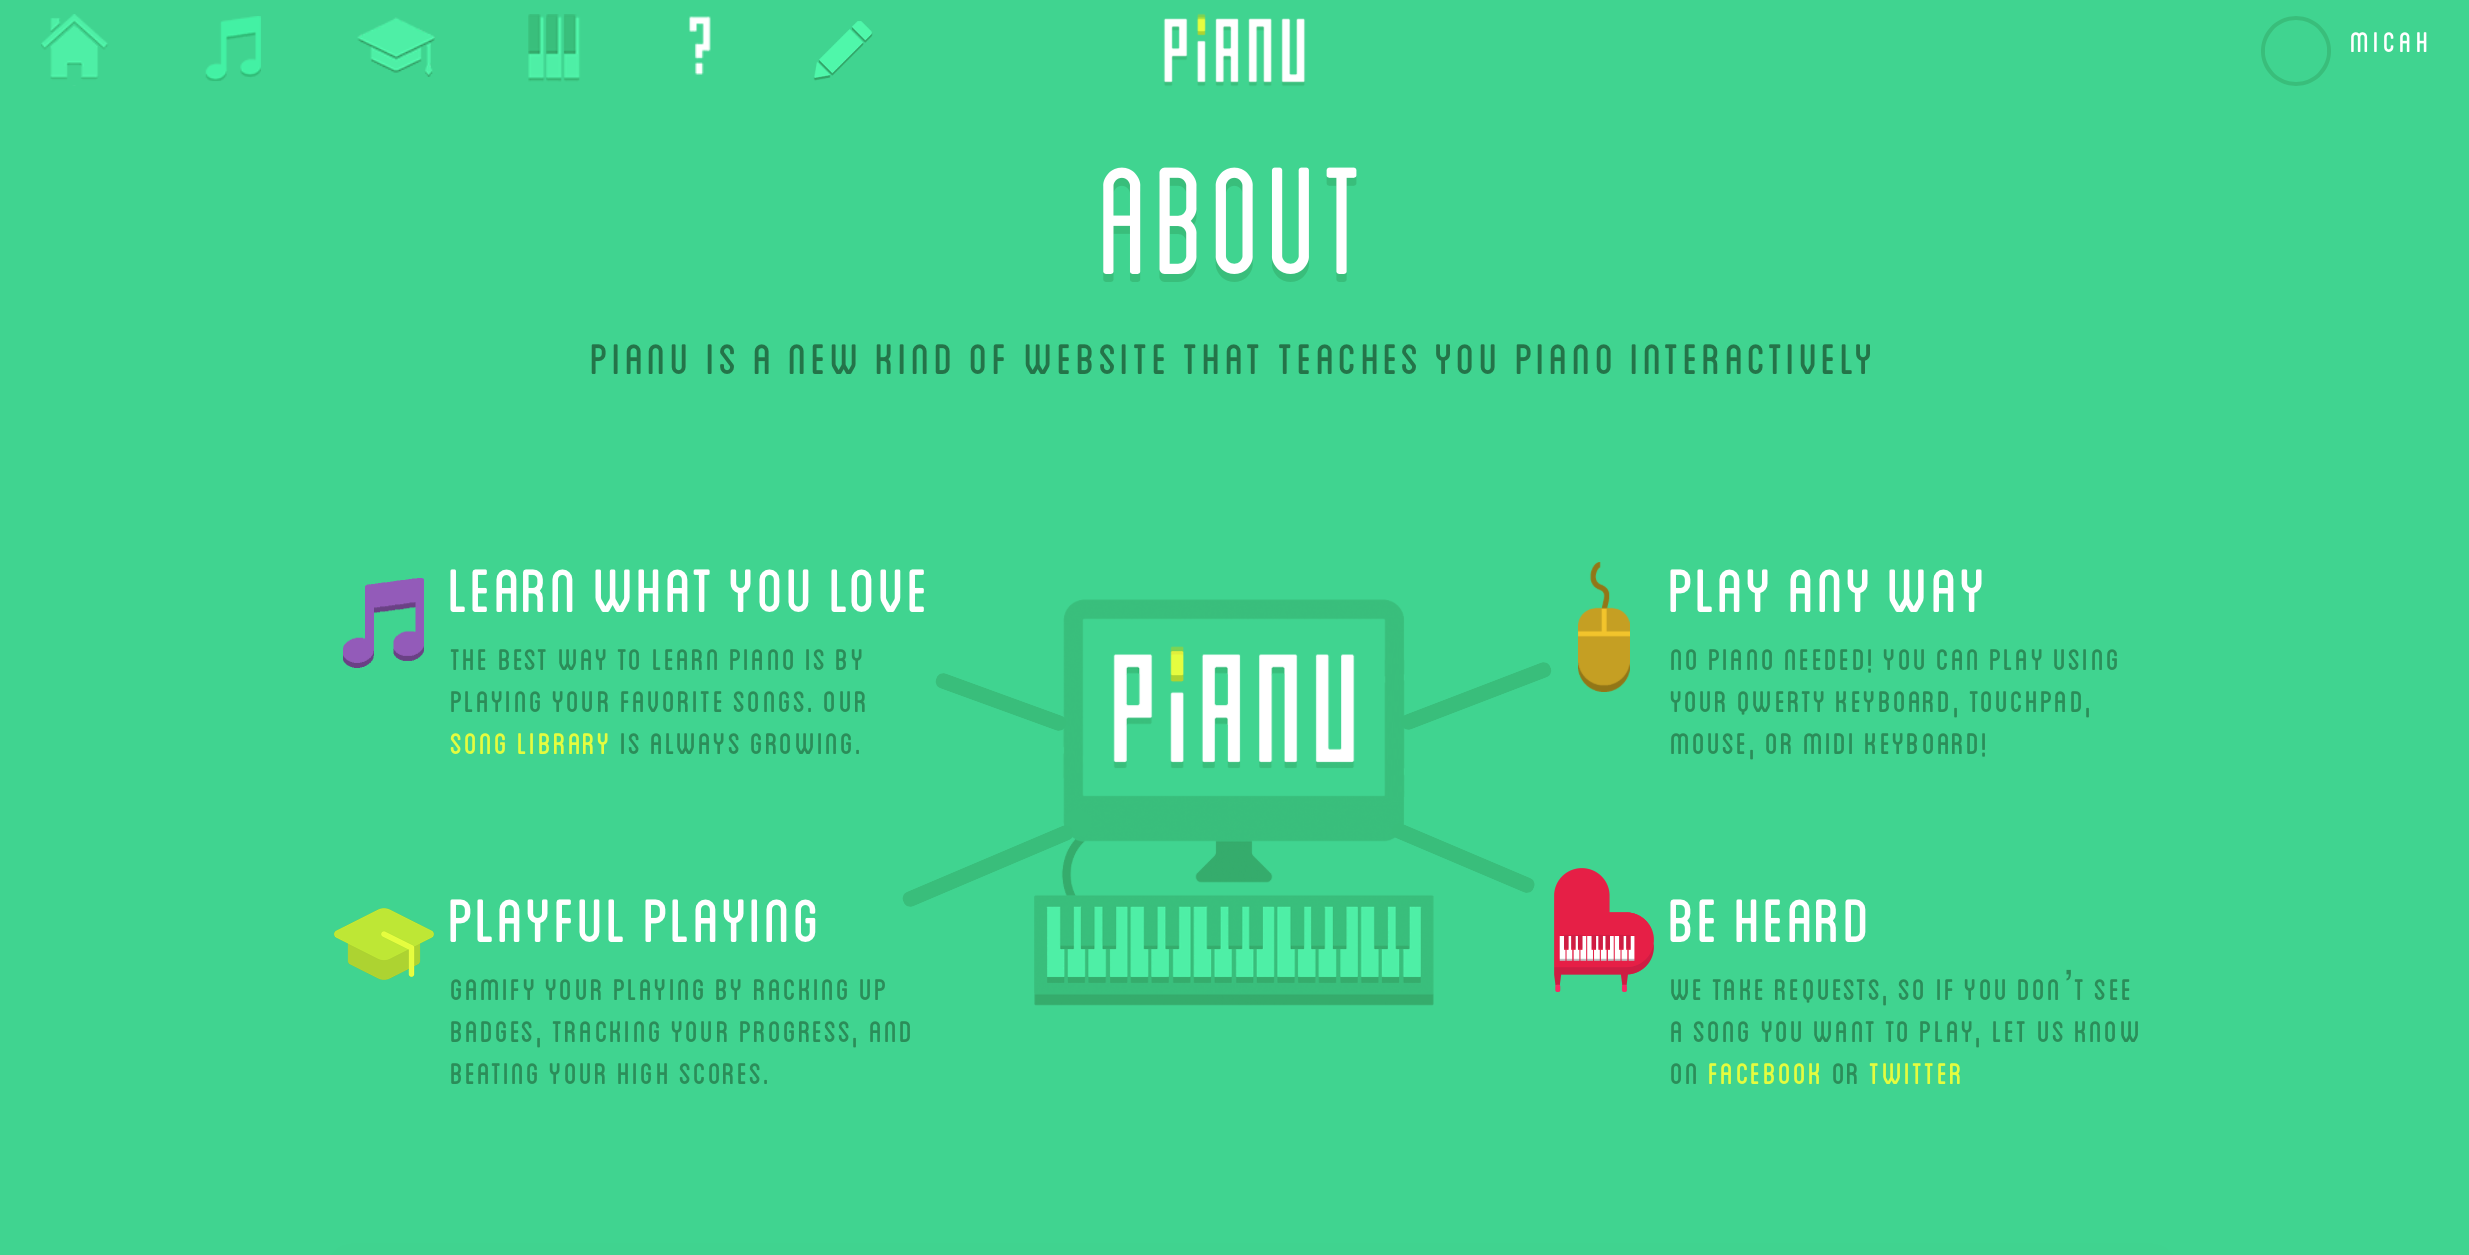 Virtually every aspect of education has been revolutionized by technology in some way. Why should piano be stuck in the past?